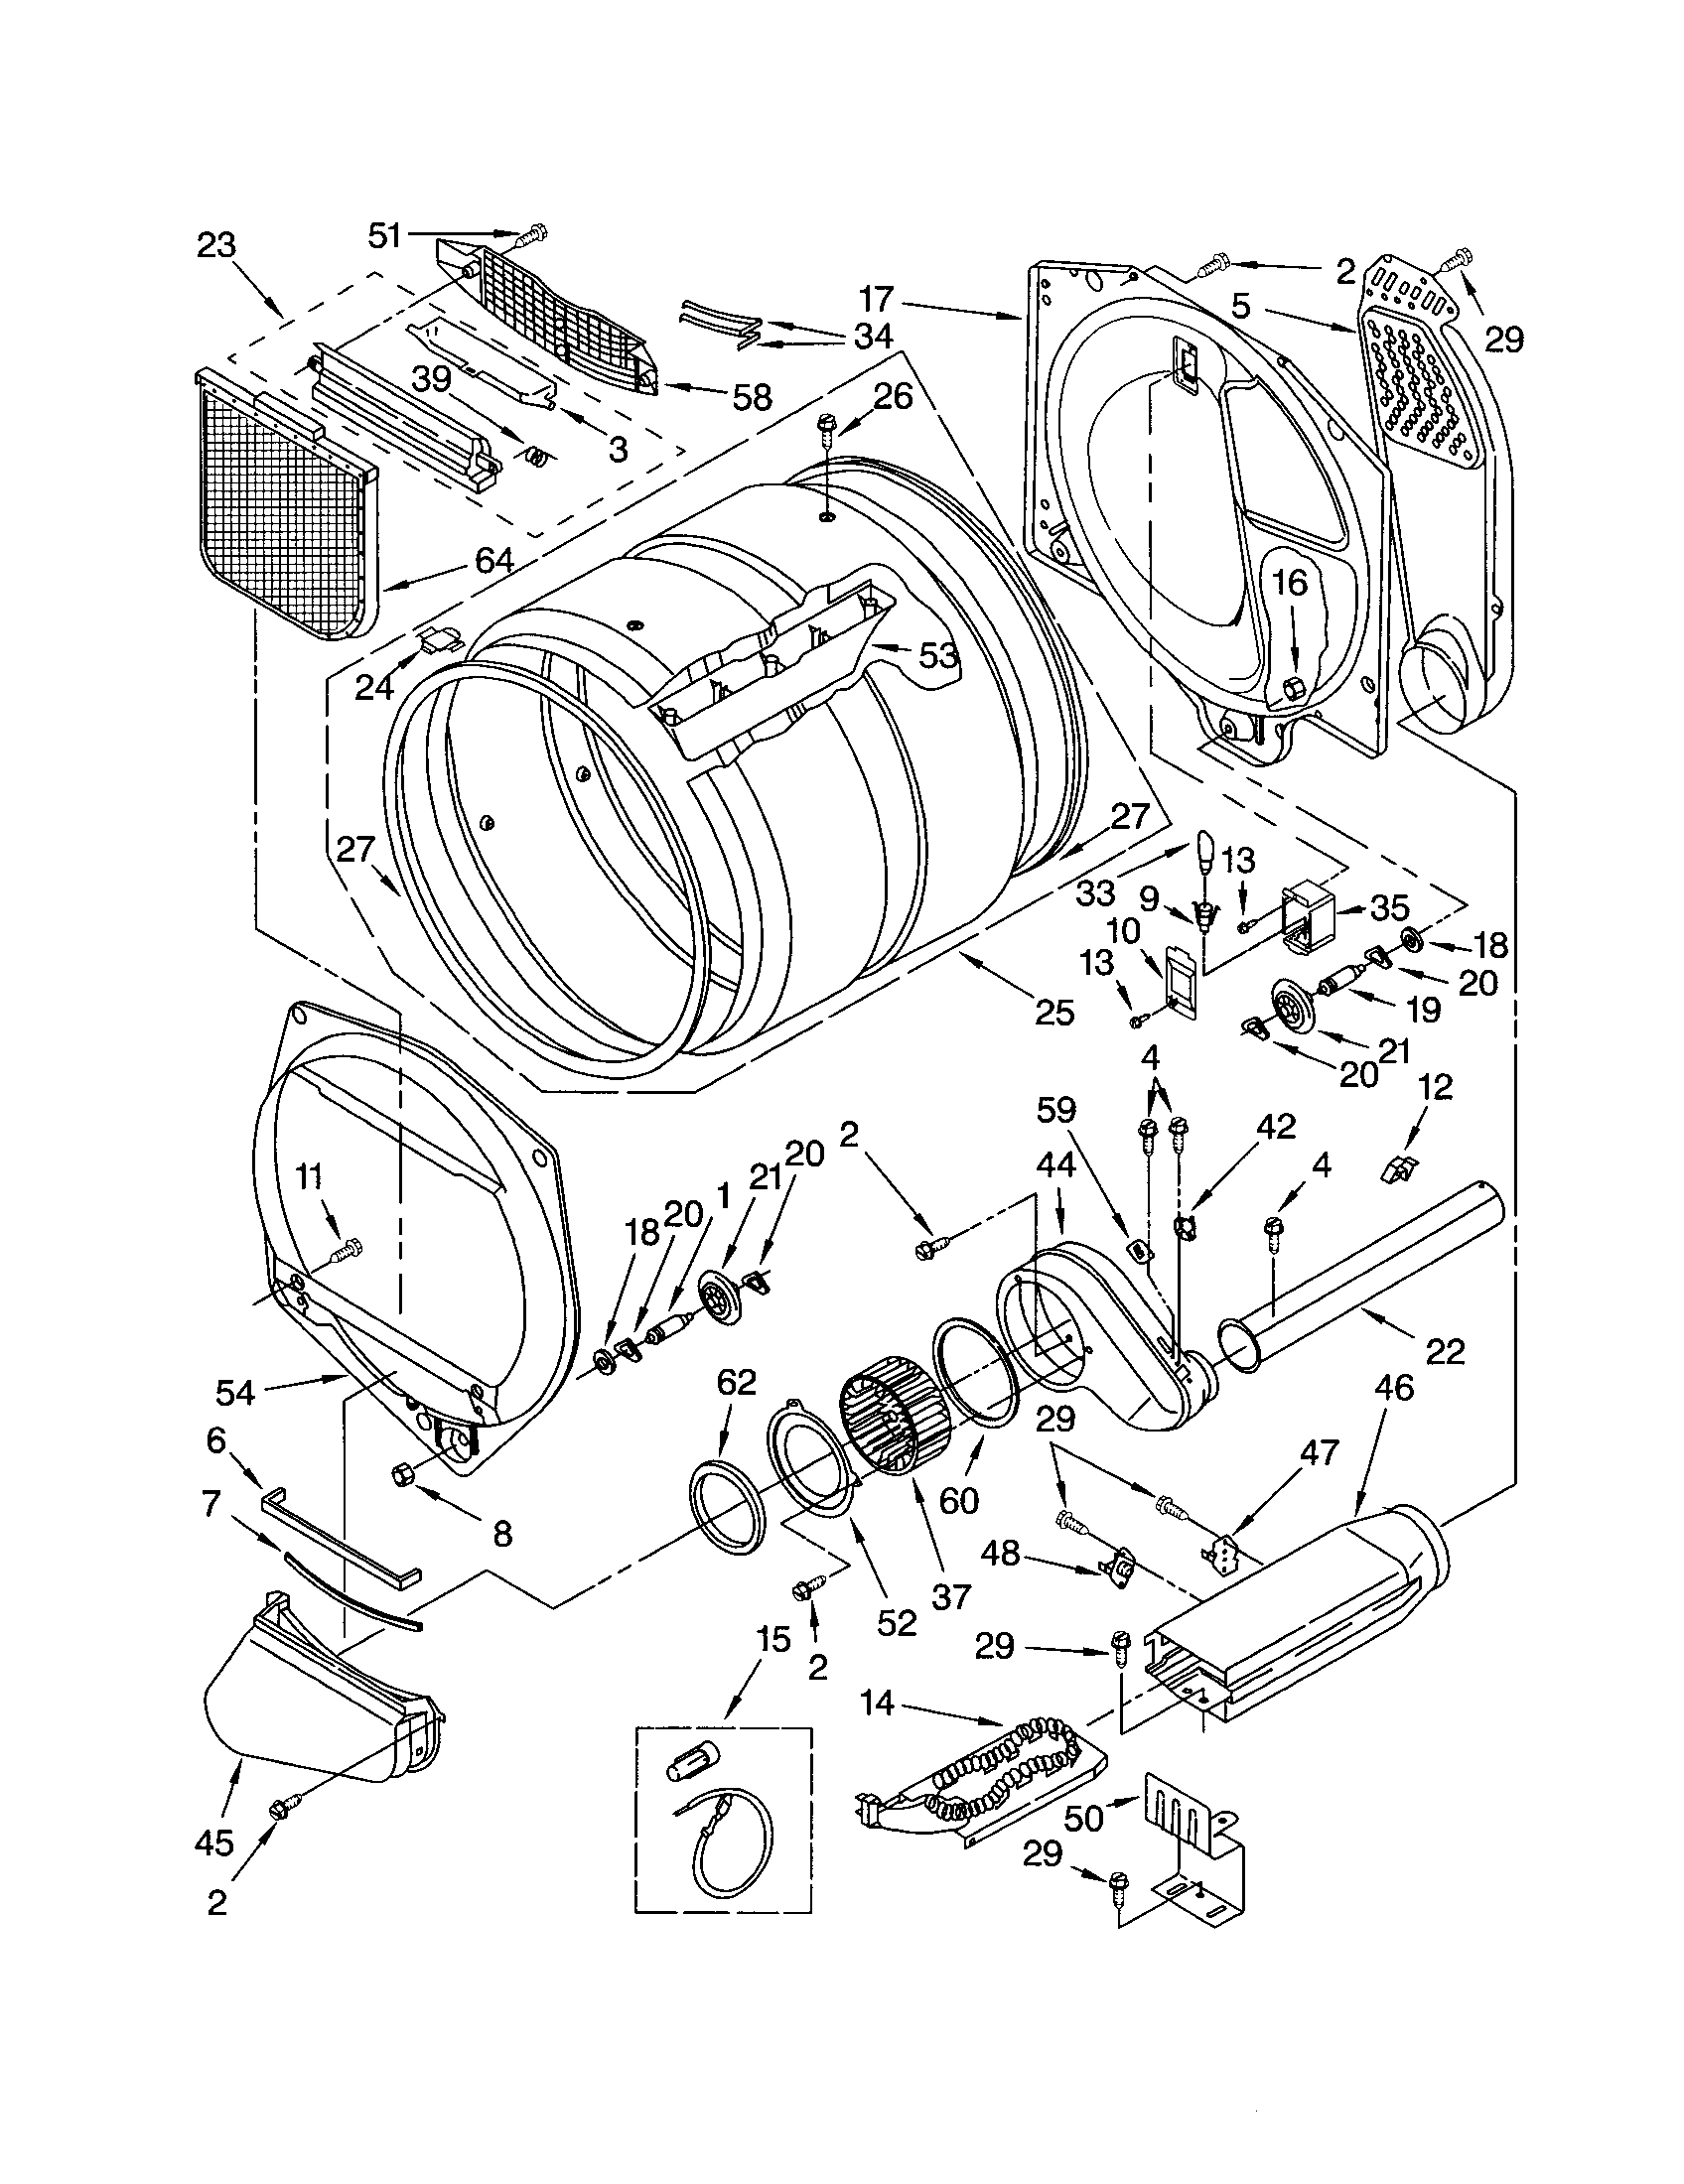 sears dryer wiring diagram